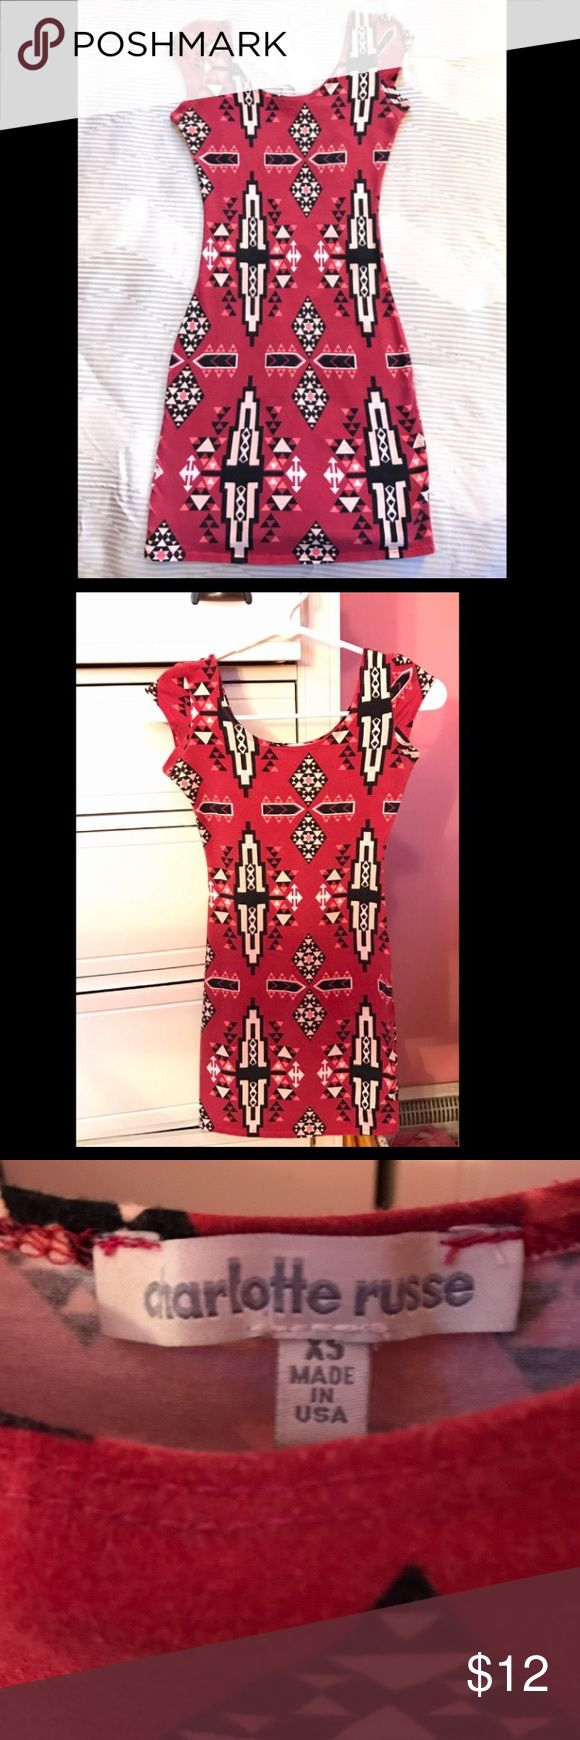 Charolette Russe Red Aztec Body-con Dress Charolette Russe Cap Sleeve Red Aztec Body-con Dress Size XS *Very good condition* Charlotte Russe Dresses Mini